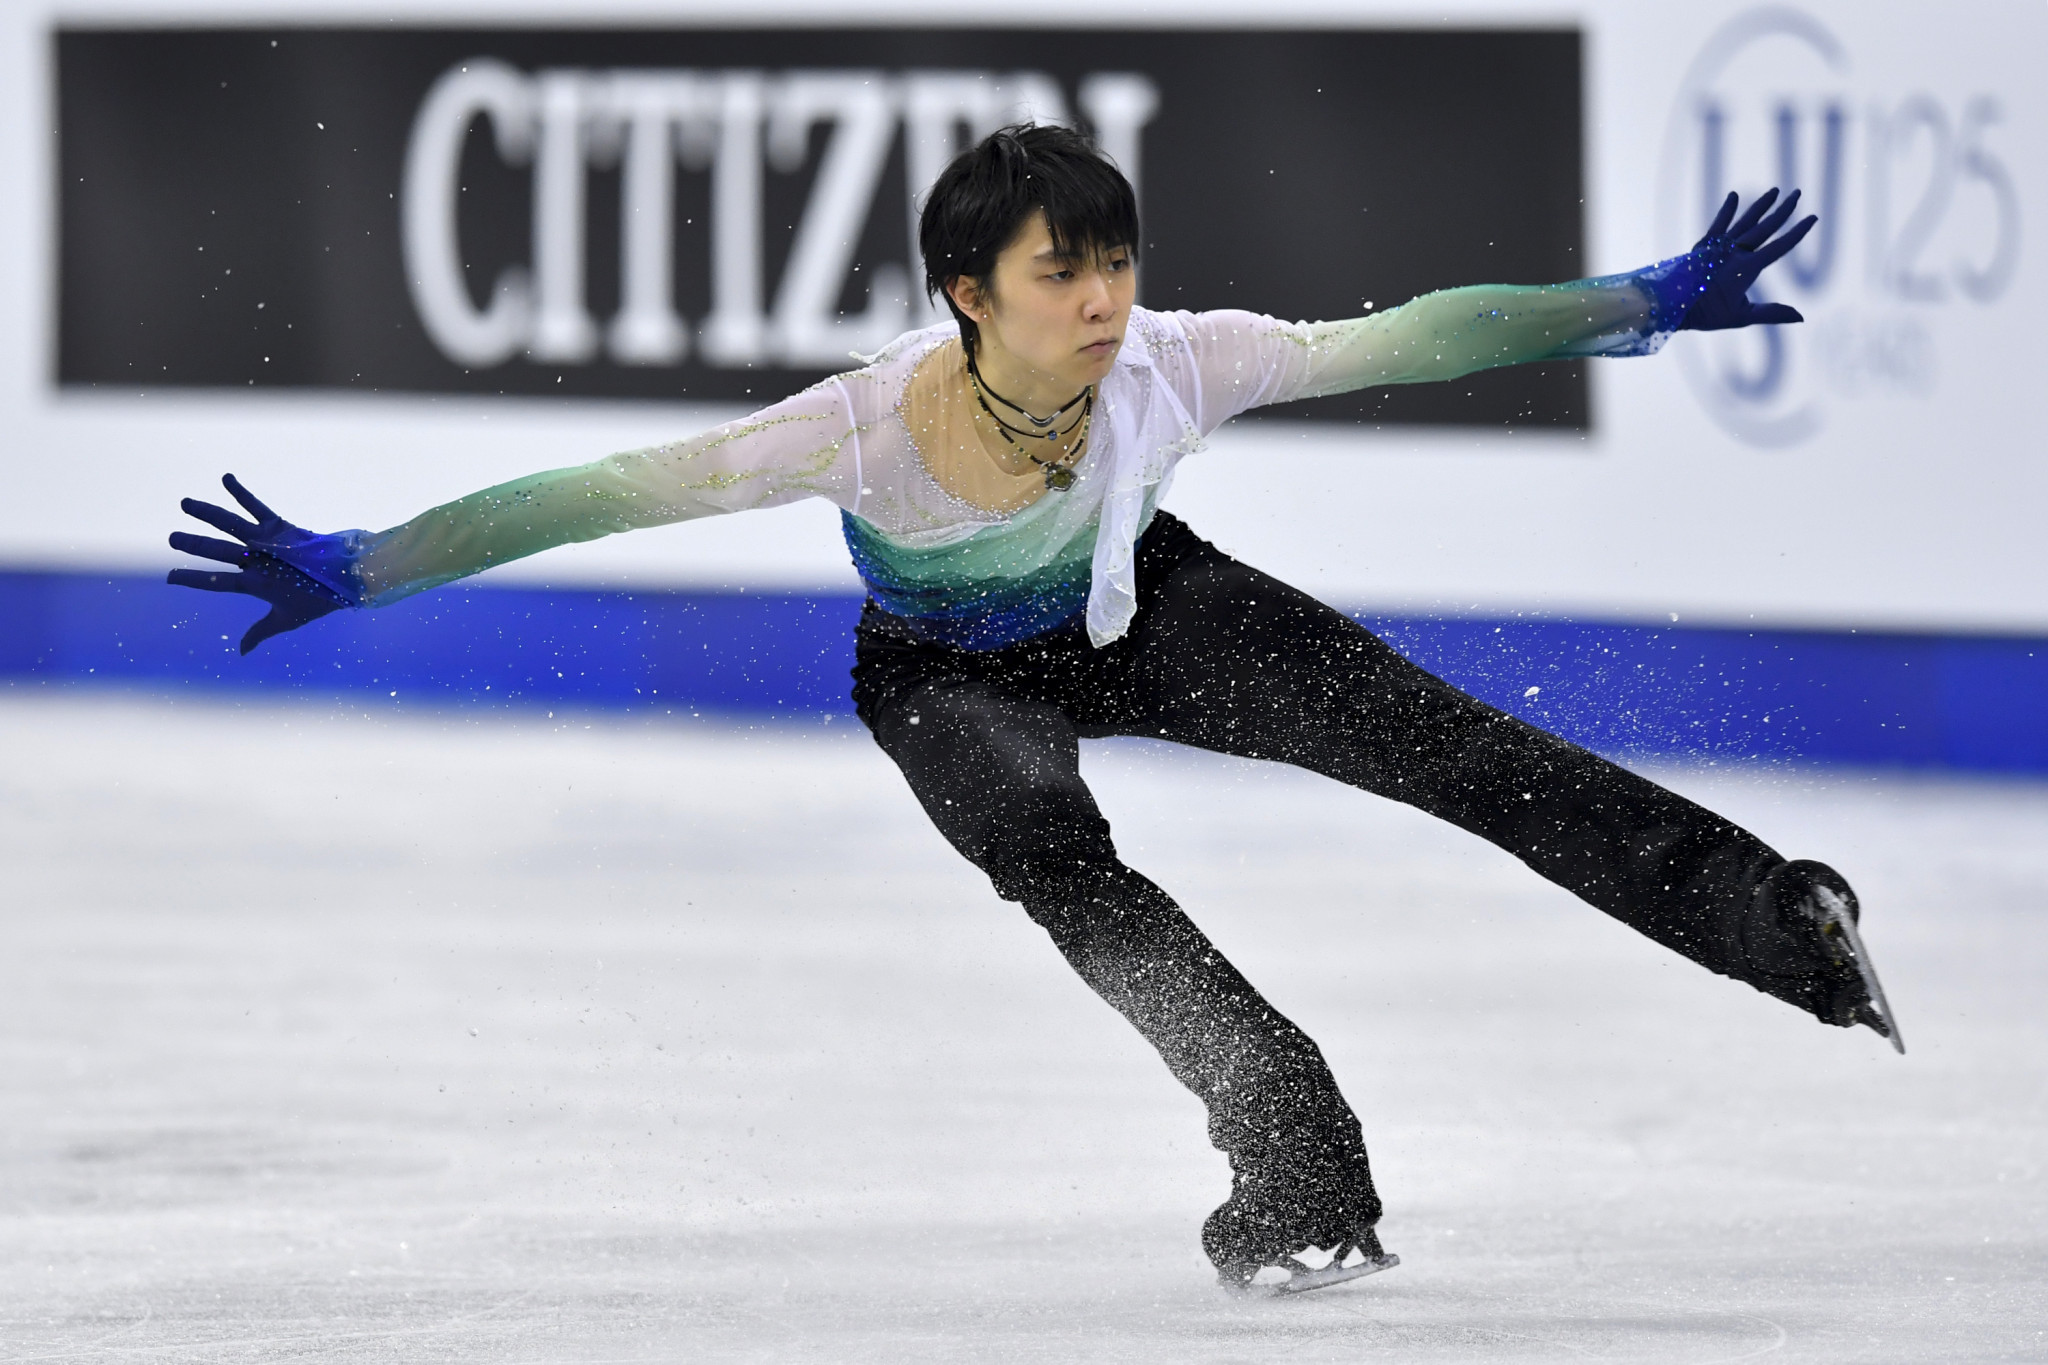 Japan's Yuzuru Hanyu won the men's title at this year's Four Continents Figure Skating Championships in Seoul ©Getty Images